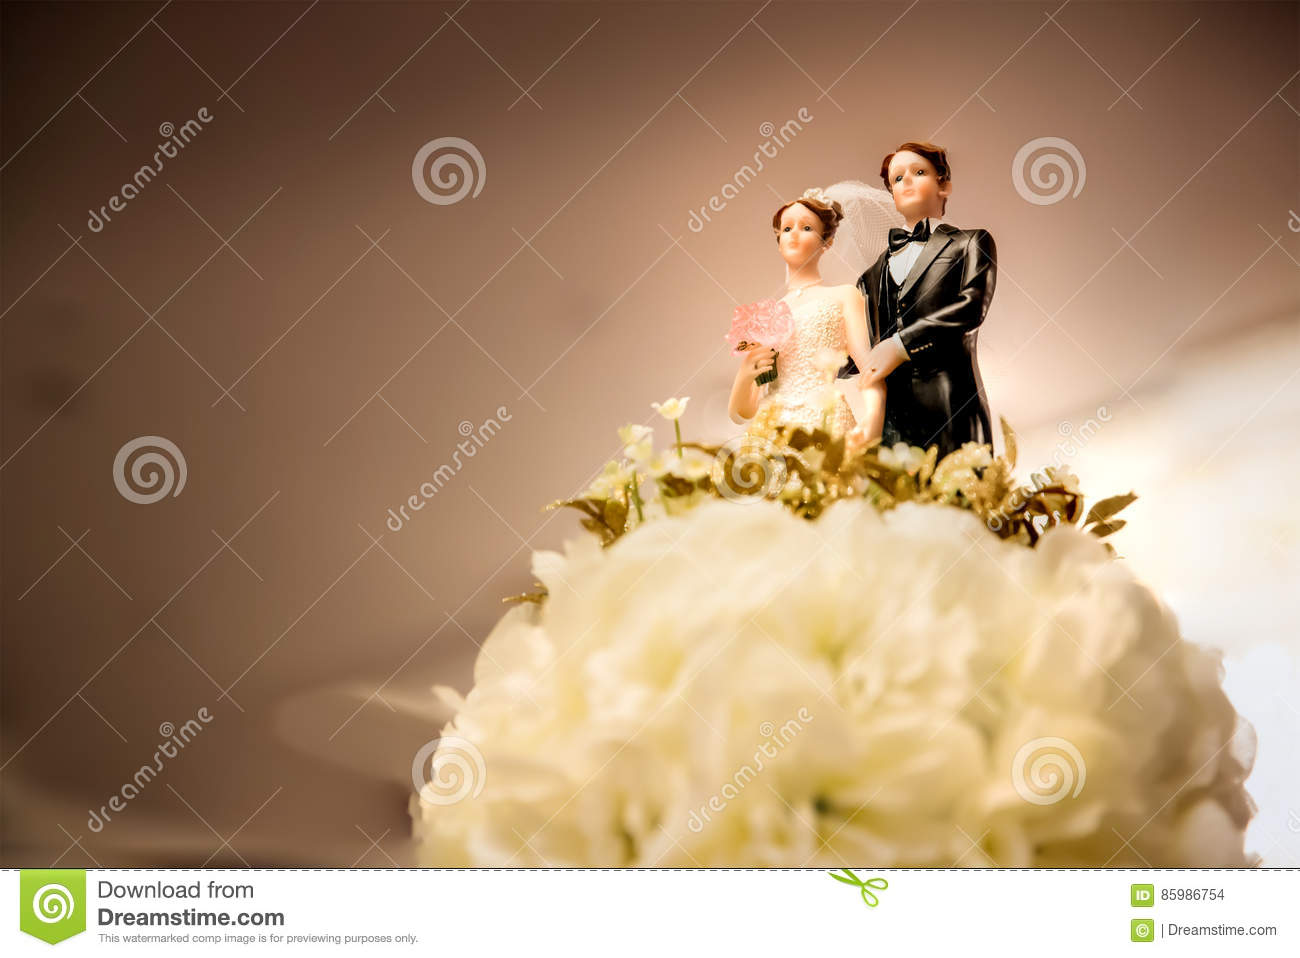 Figurines Of The Bride And Groom On A Wedding Cake Stock Photo ...